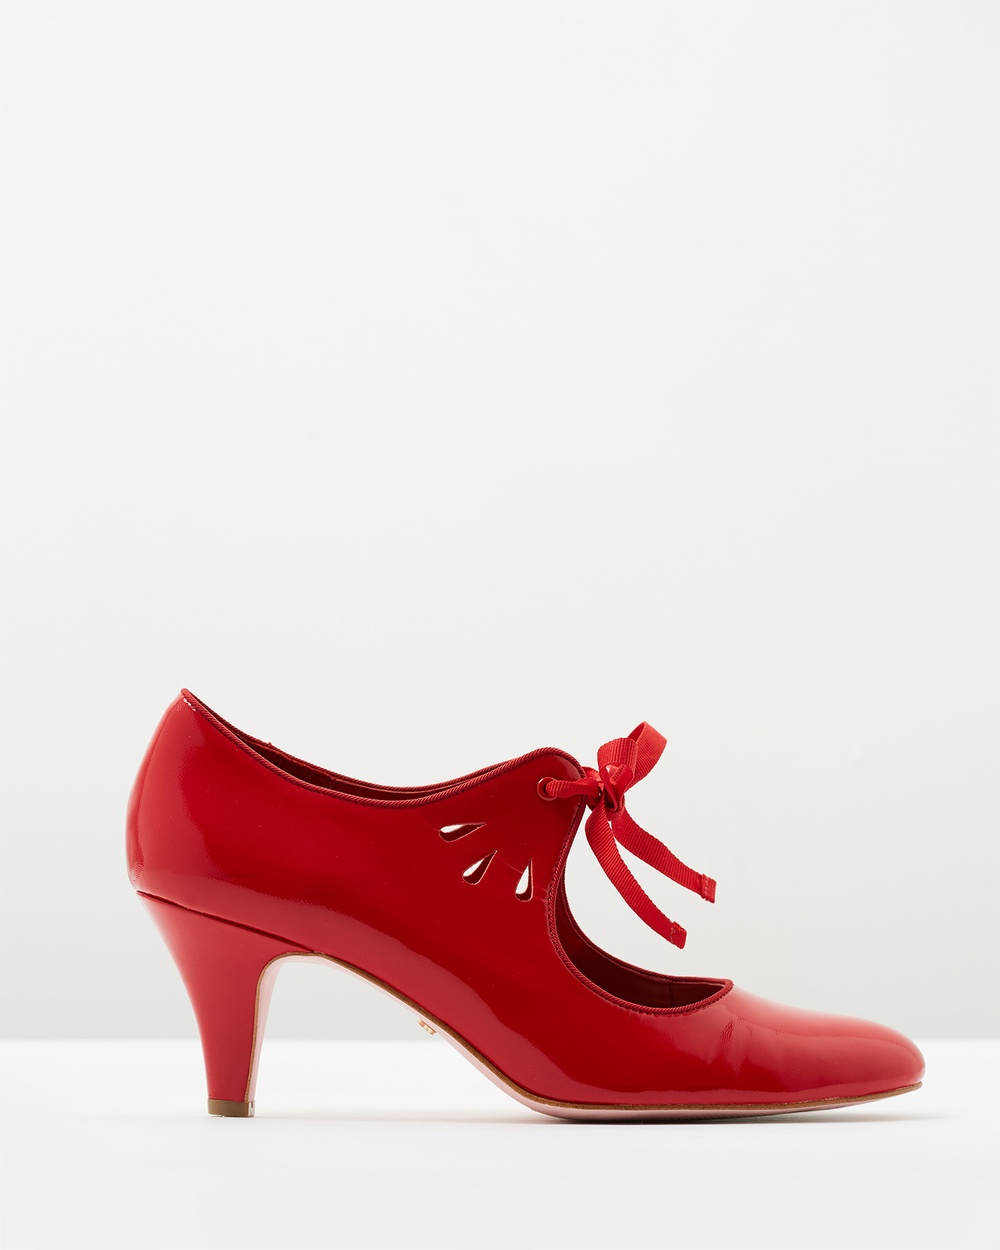 Review Mary Jane Shoes All Pumps Red Mary Jane Shoes